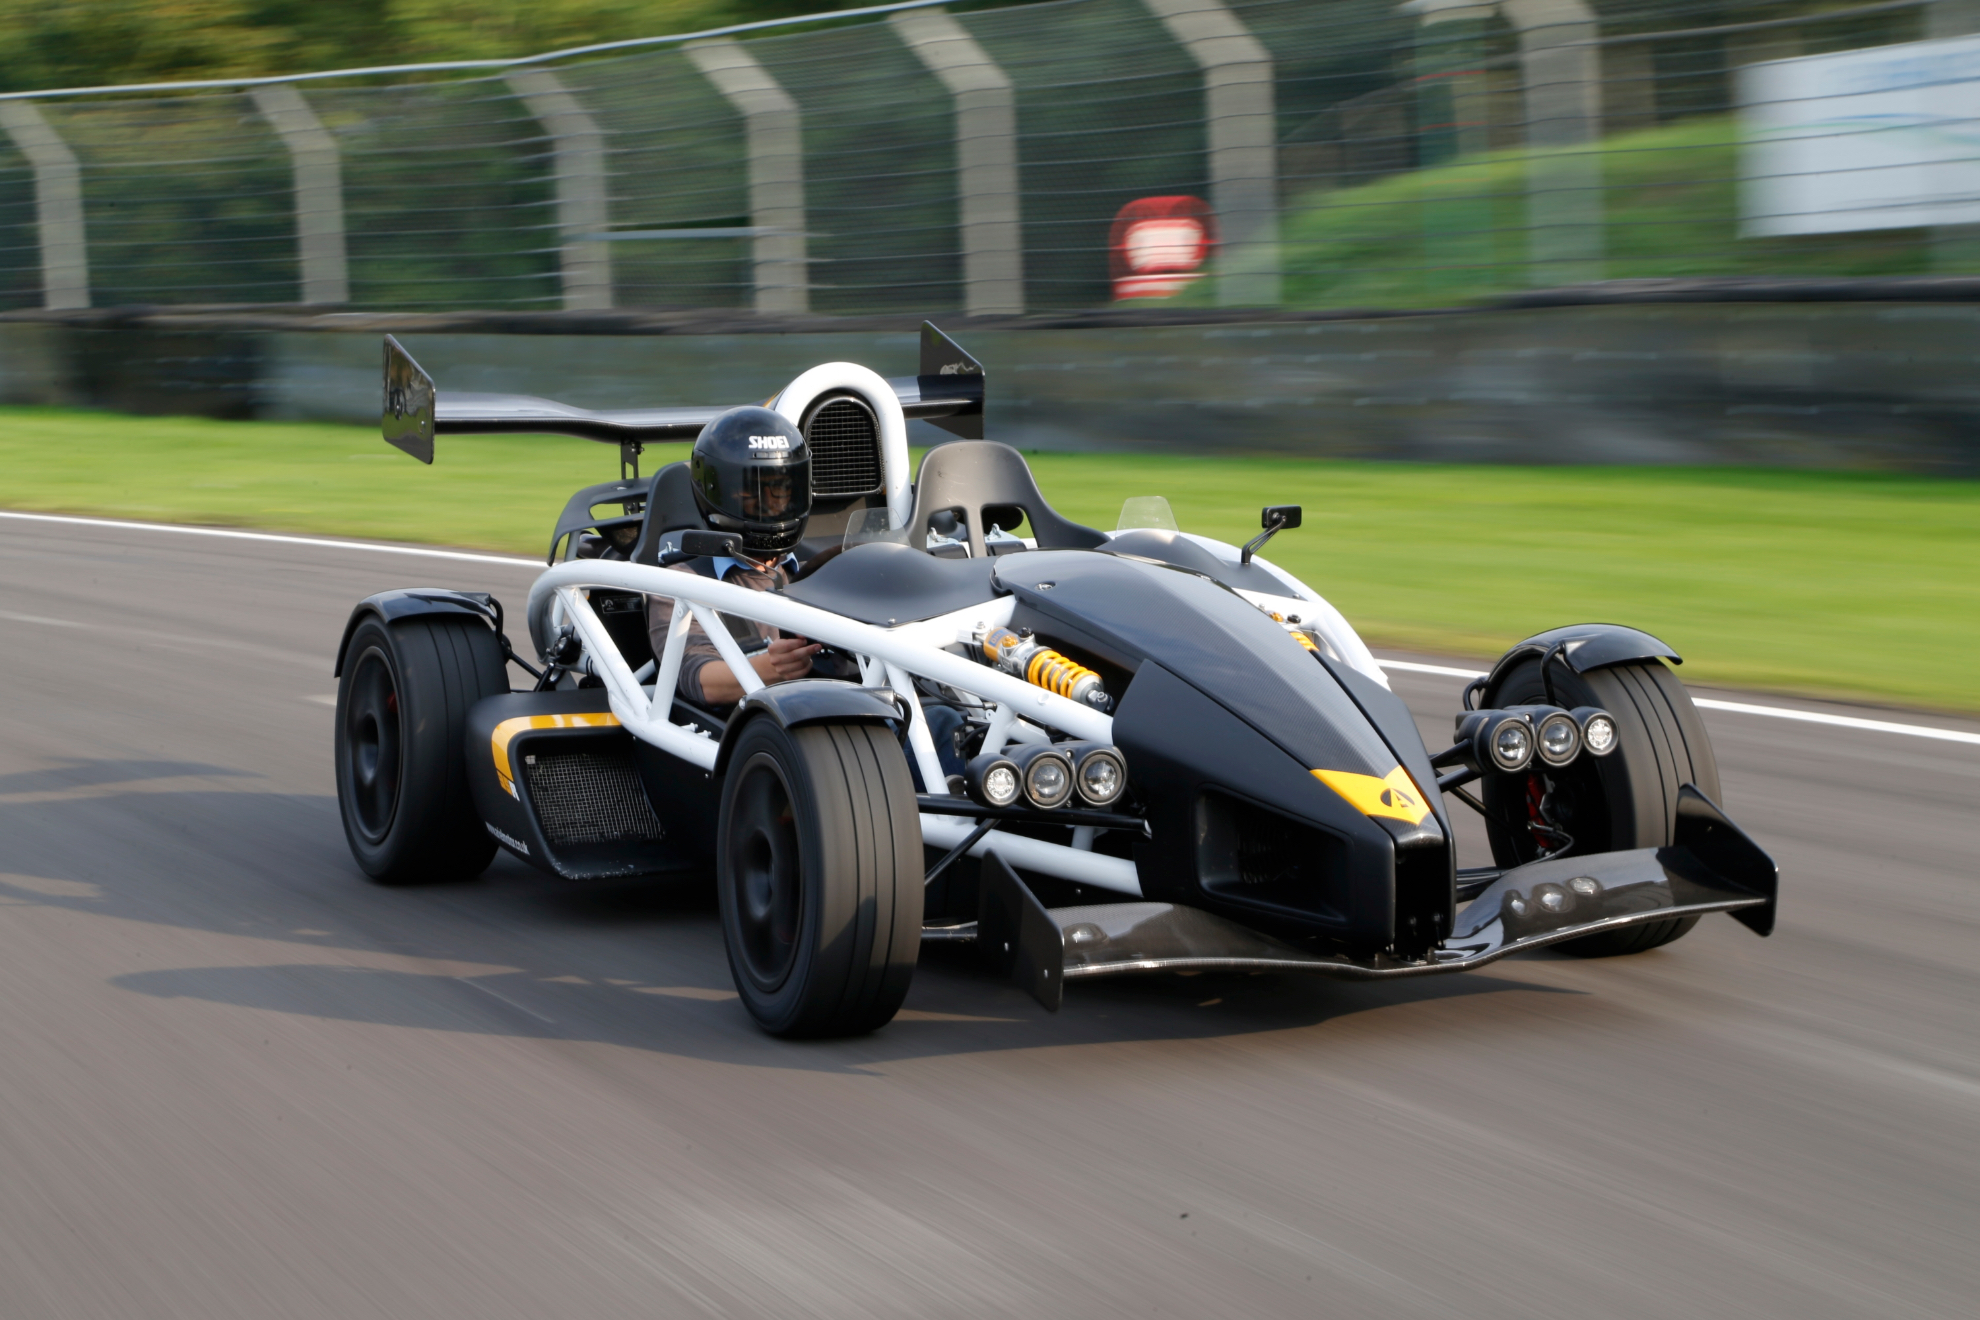 Ariel Atom to Receive Hybrid Technology From Honda - autoevolution